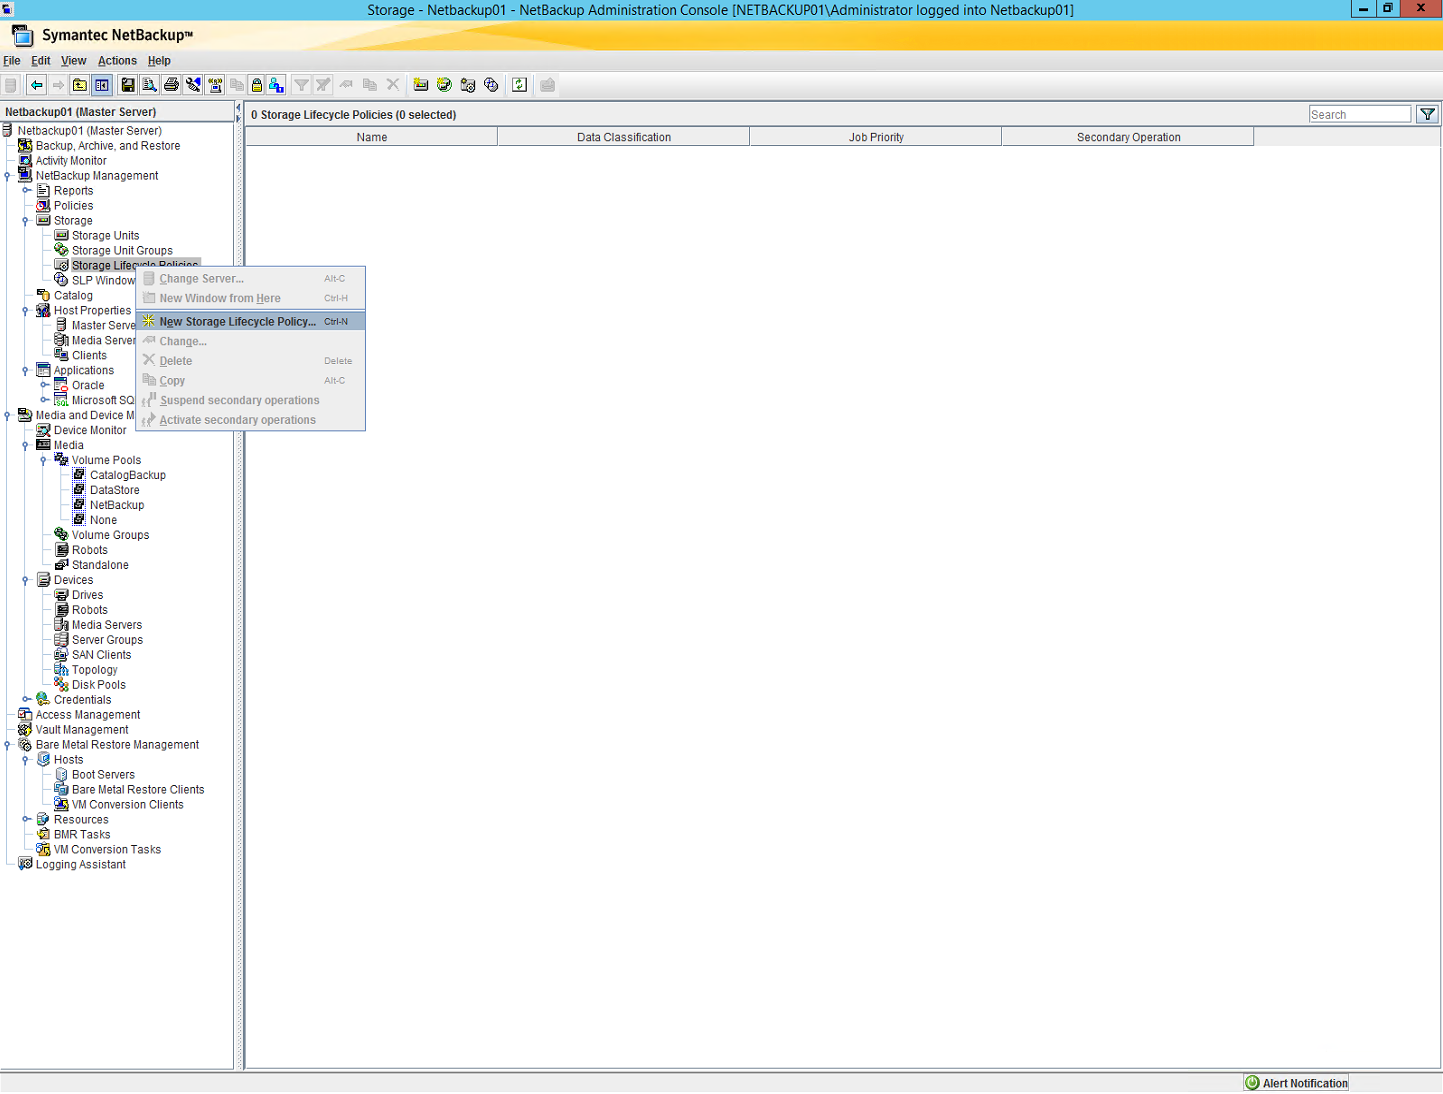 Netbackup Administration Console, New Storage Lifecycle Policy